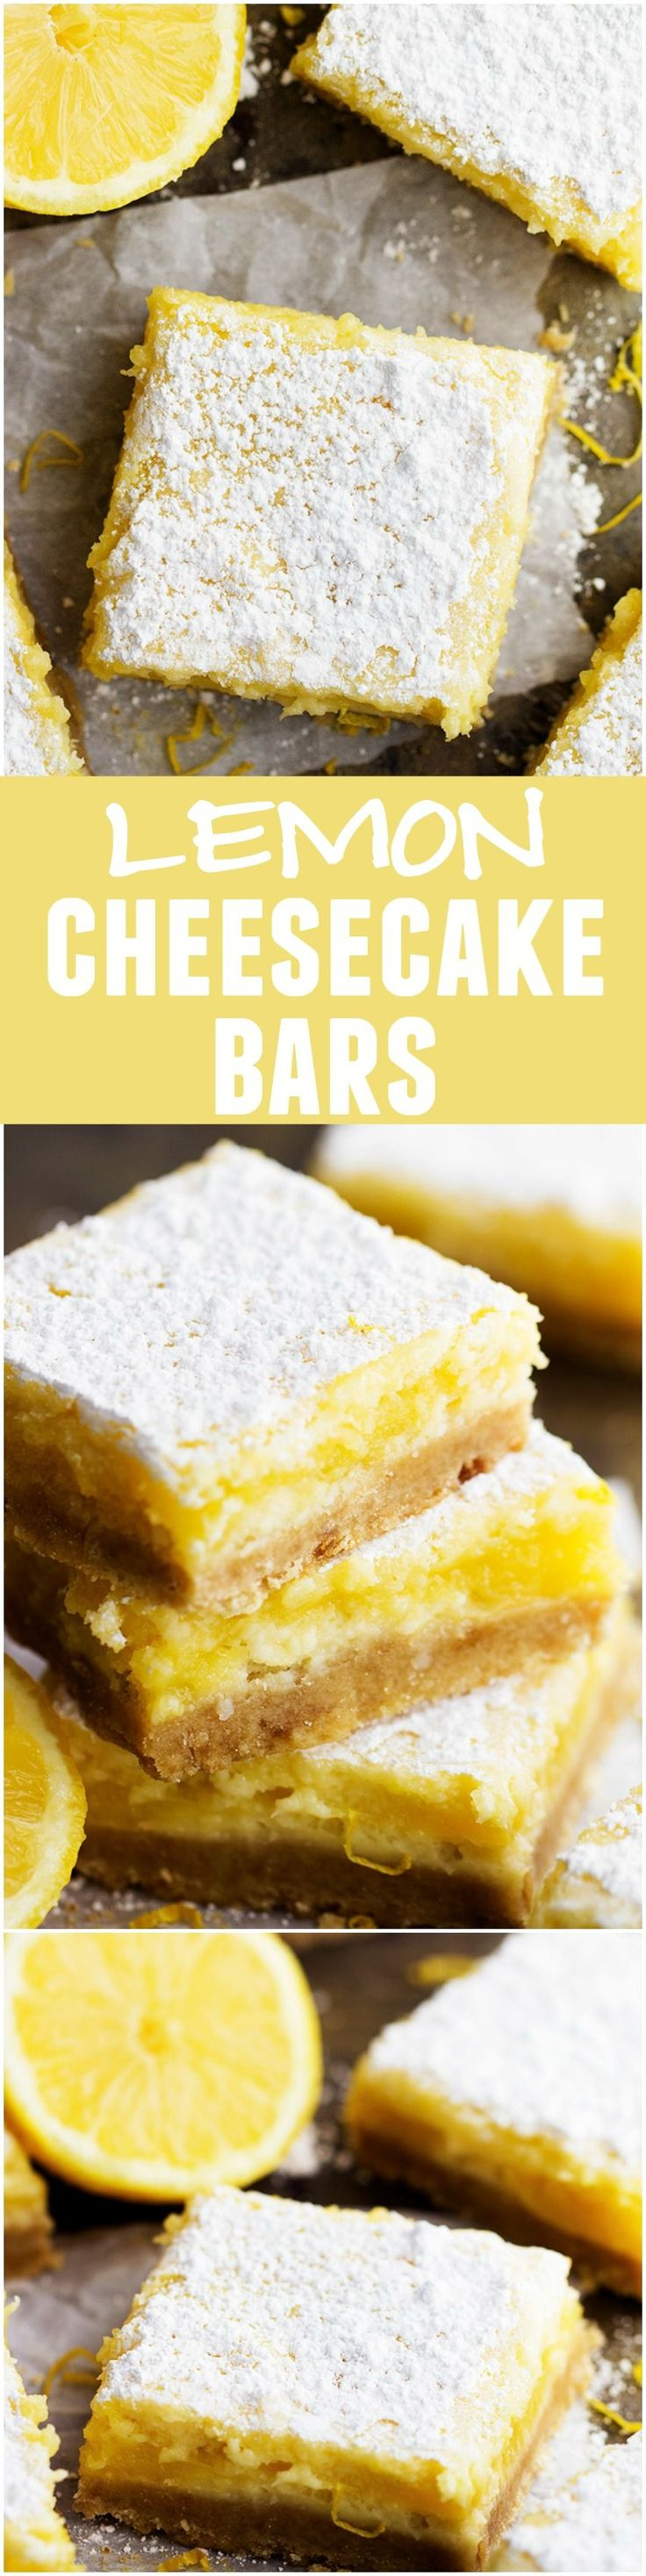 These are the absolute BEST lemon cheesecake bars! They will be raved about…